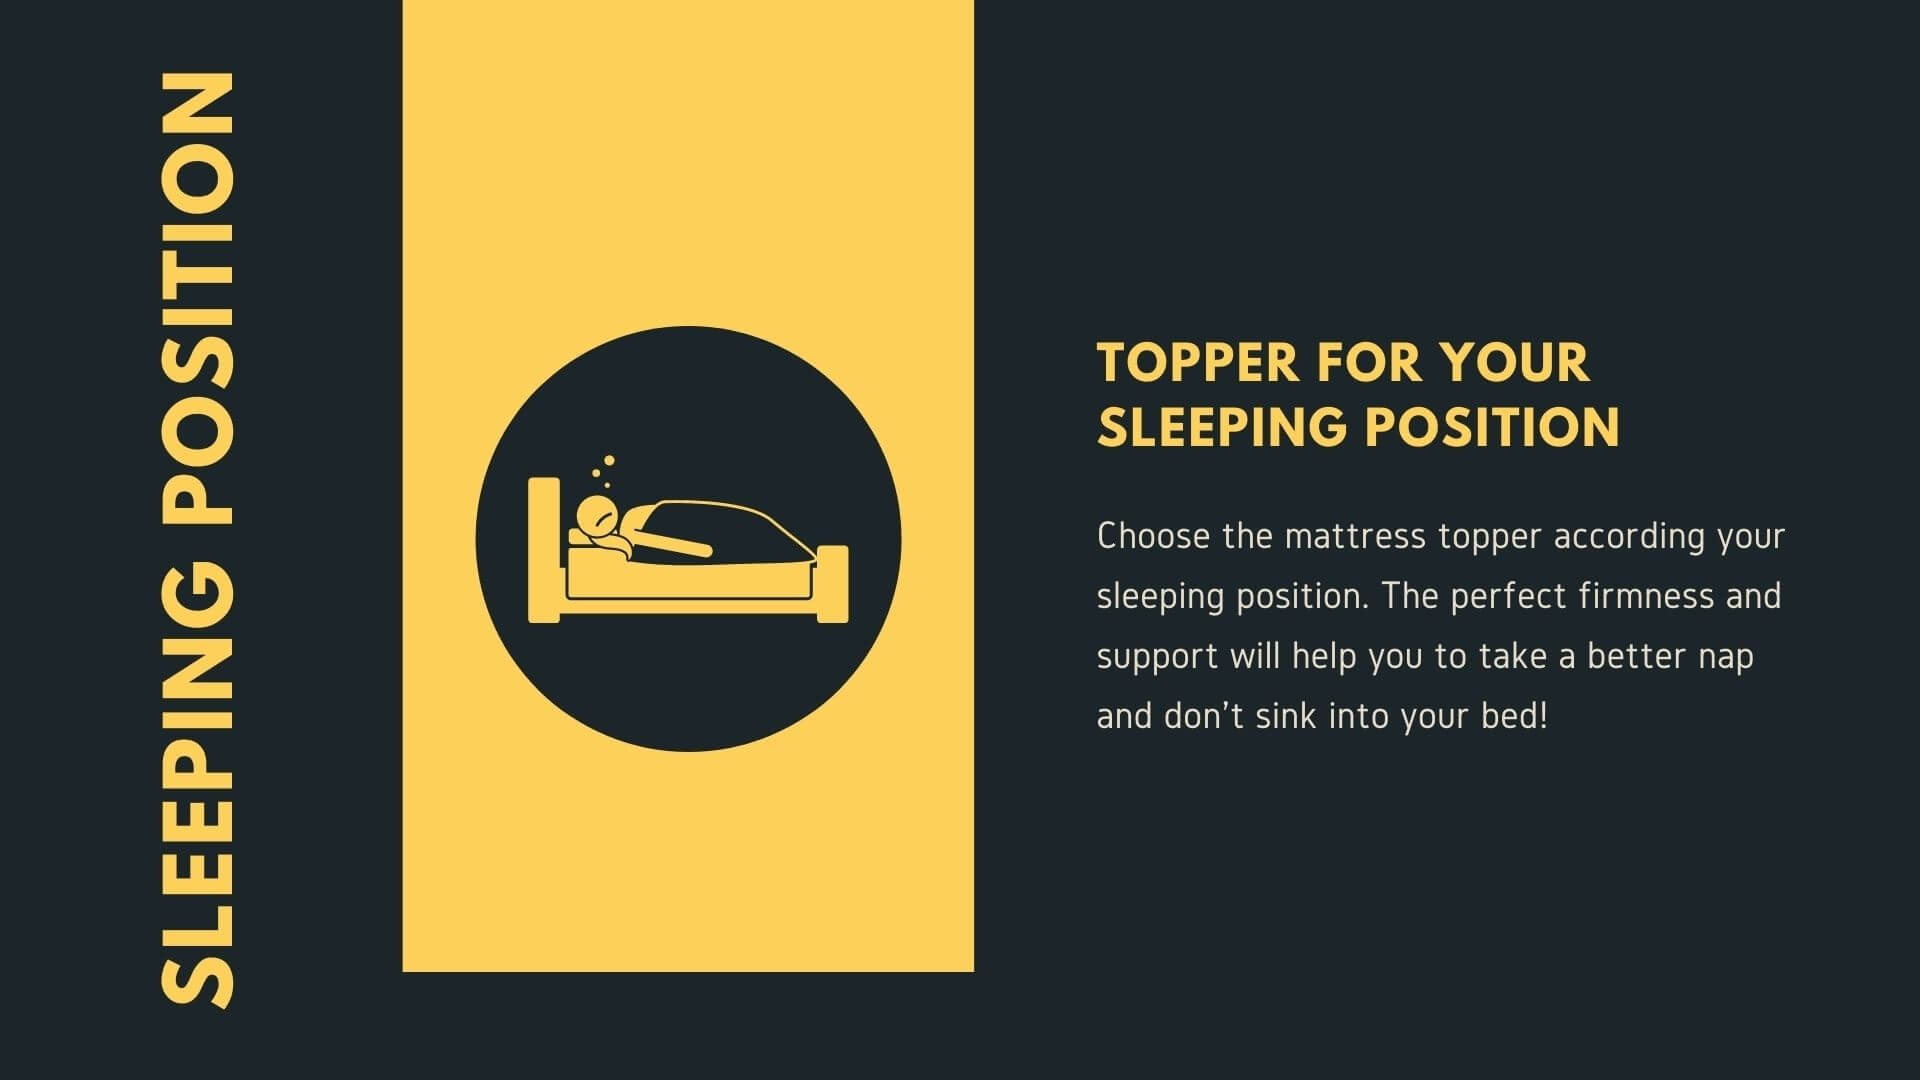 Mattress Toppers for your sleeping position